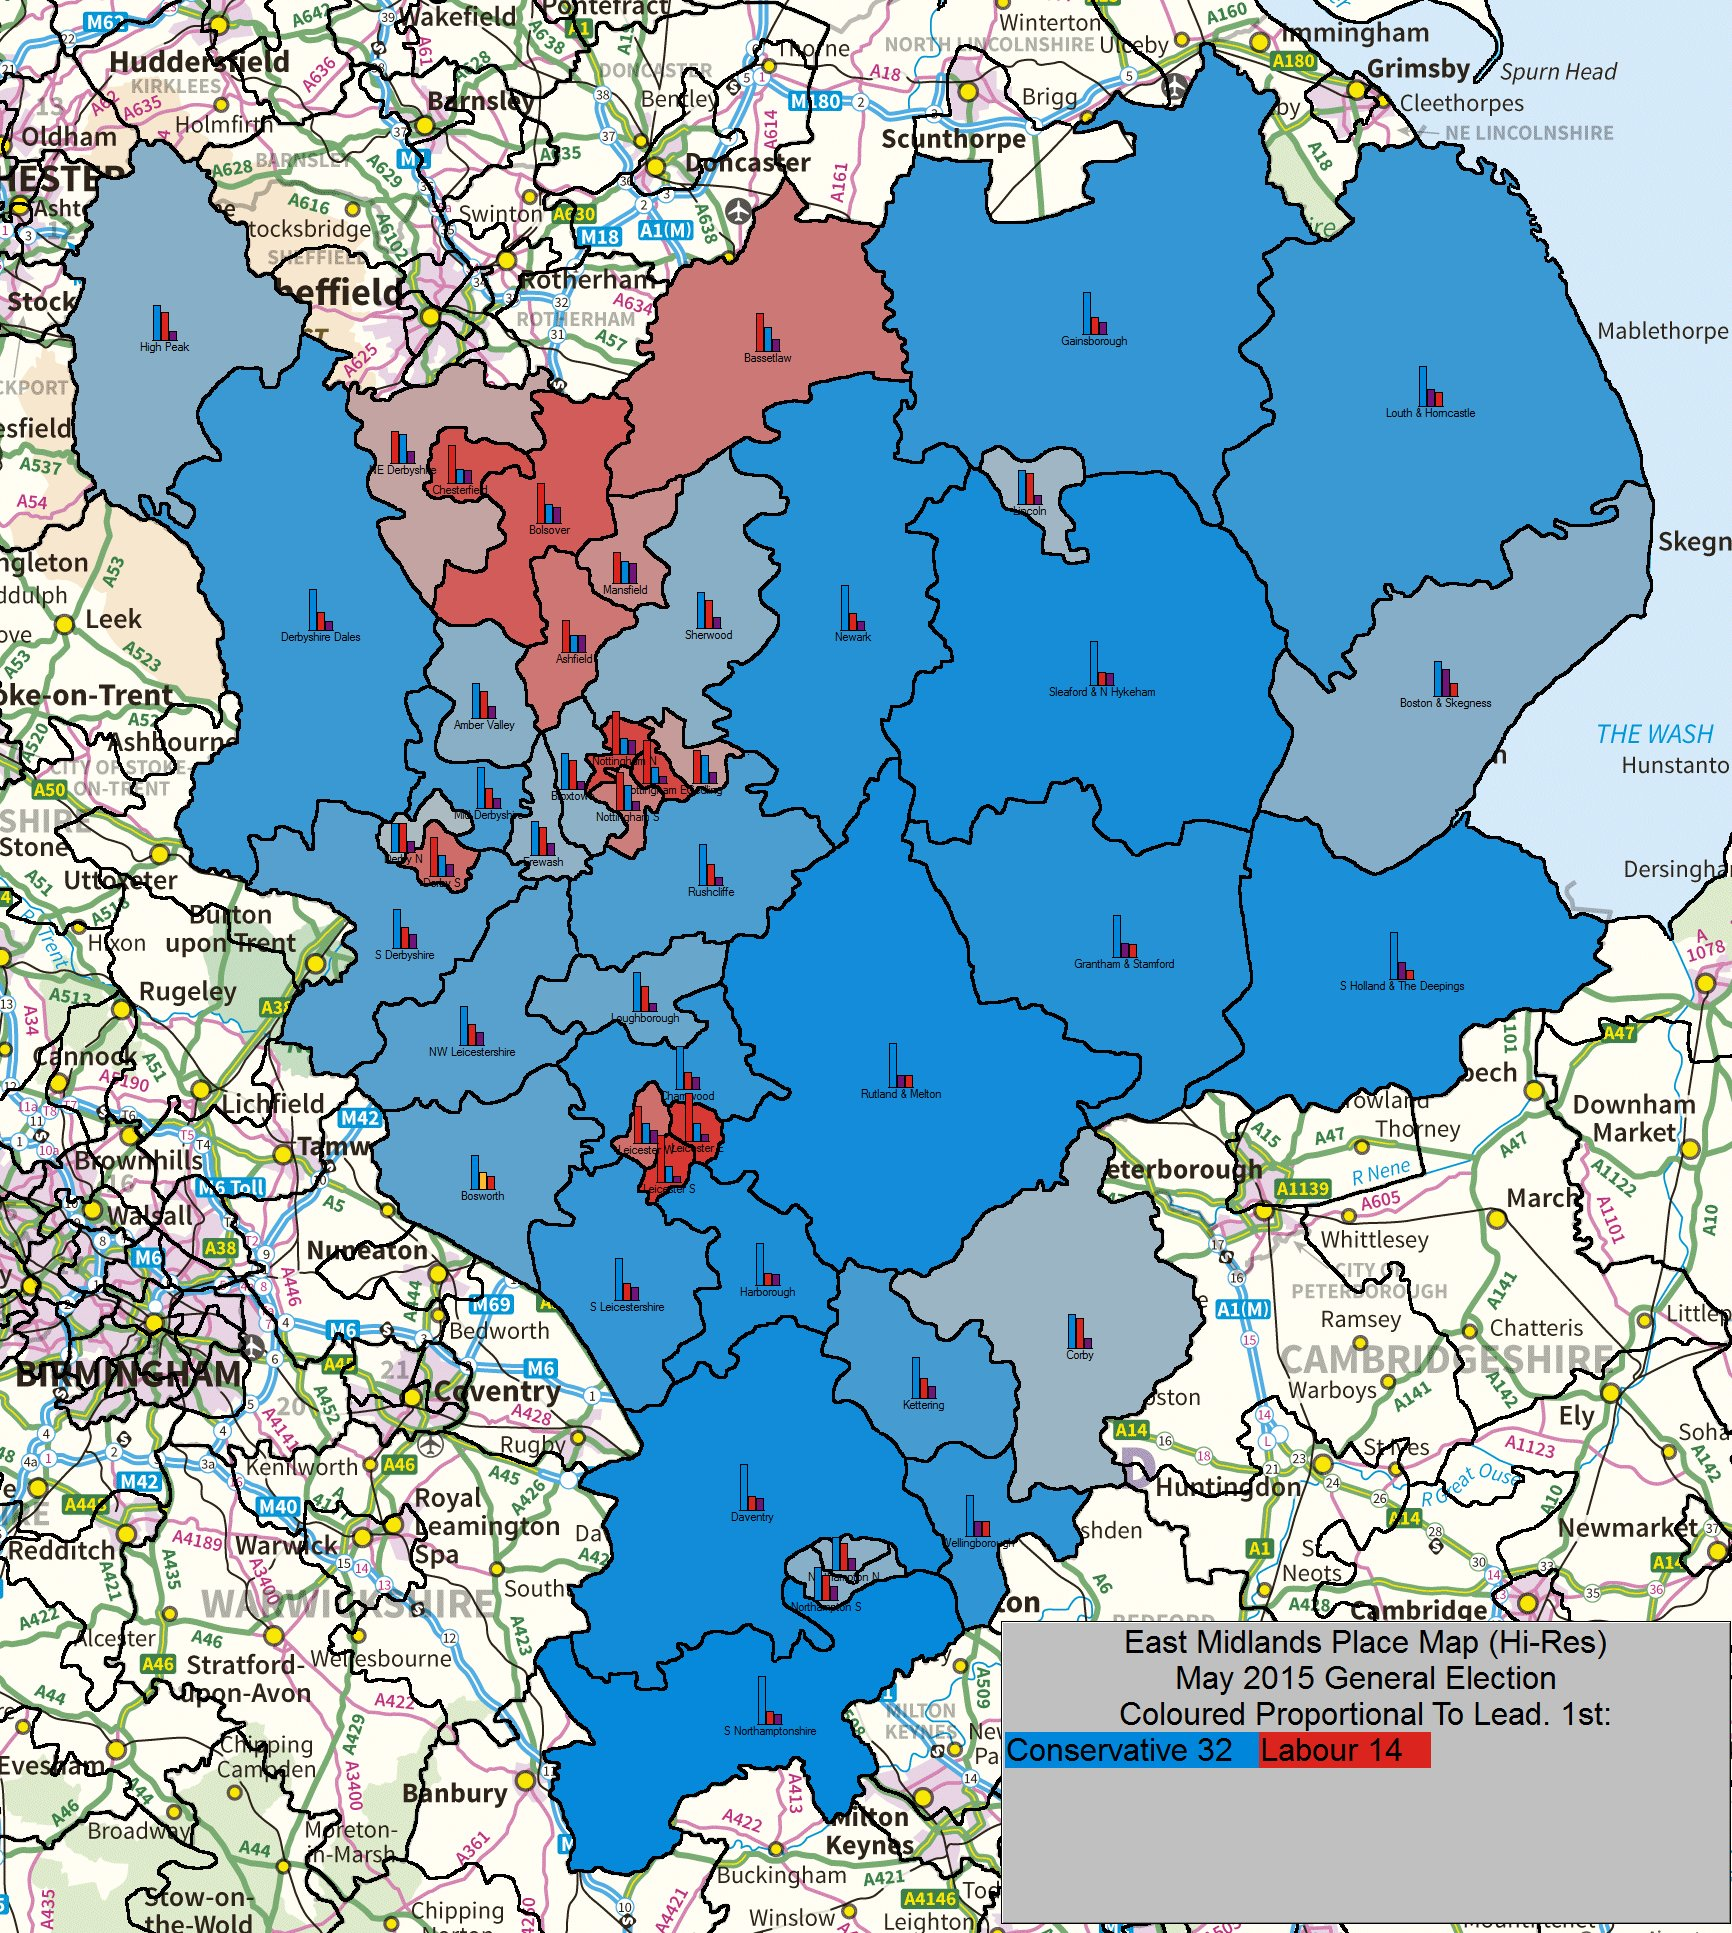 may 2015 general election result east midlands